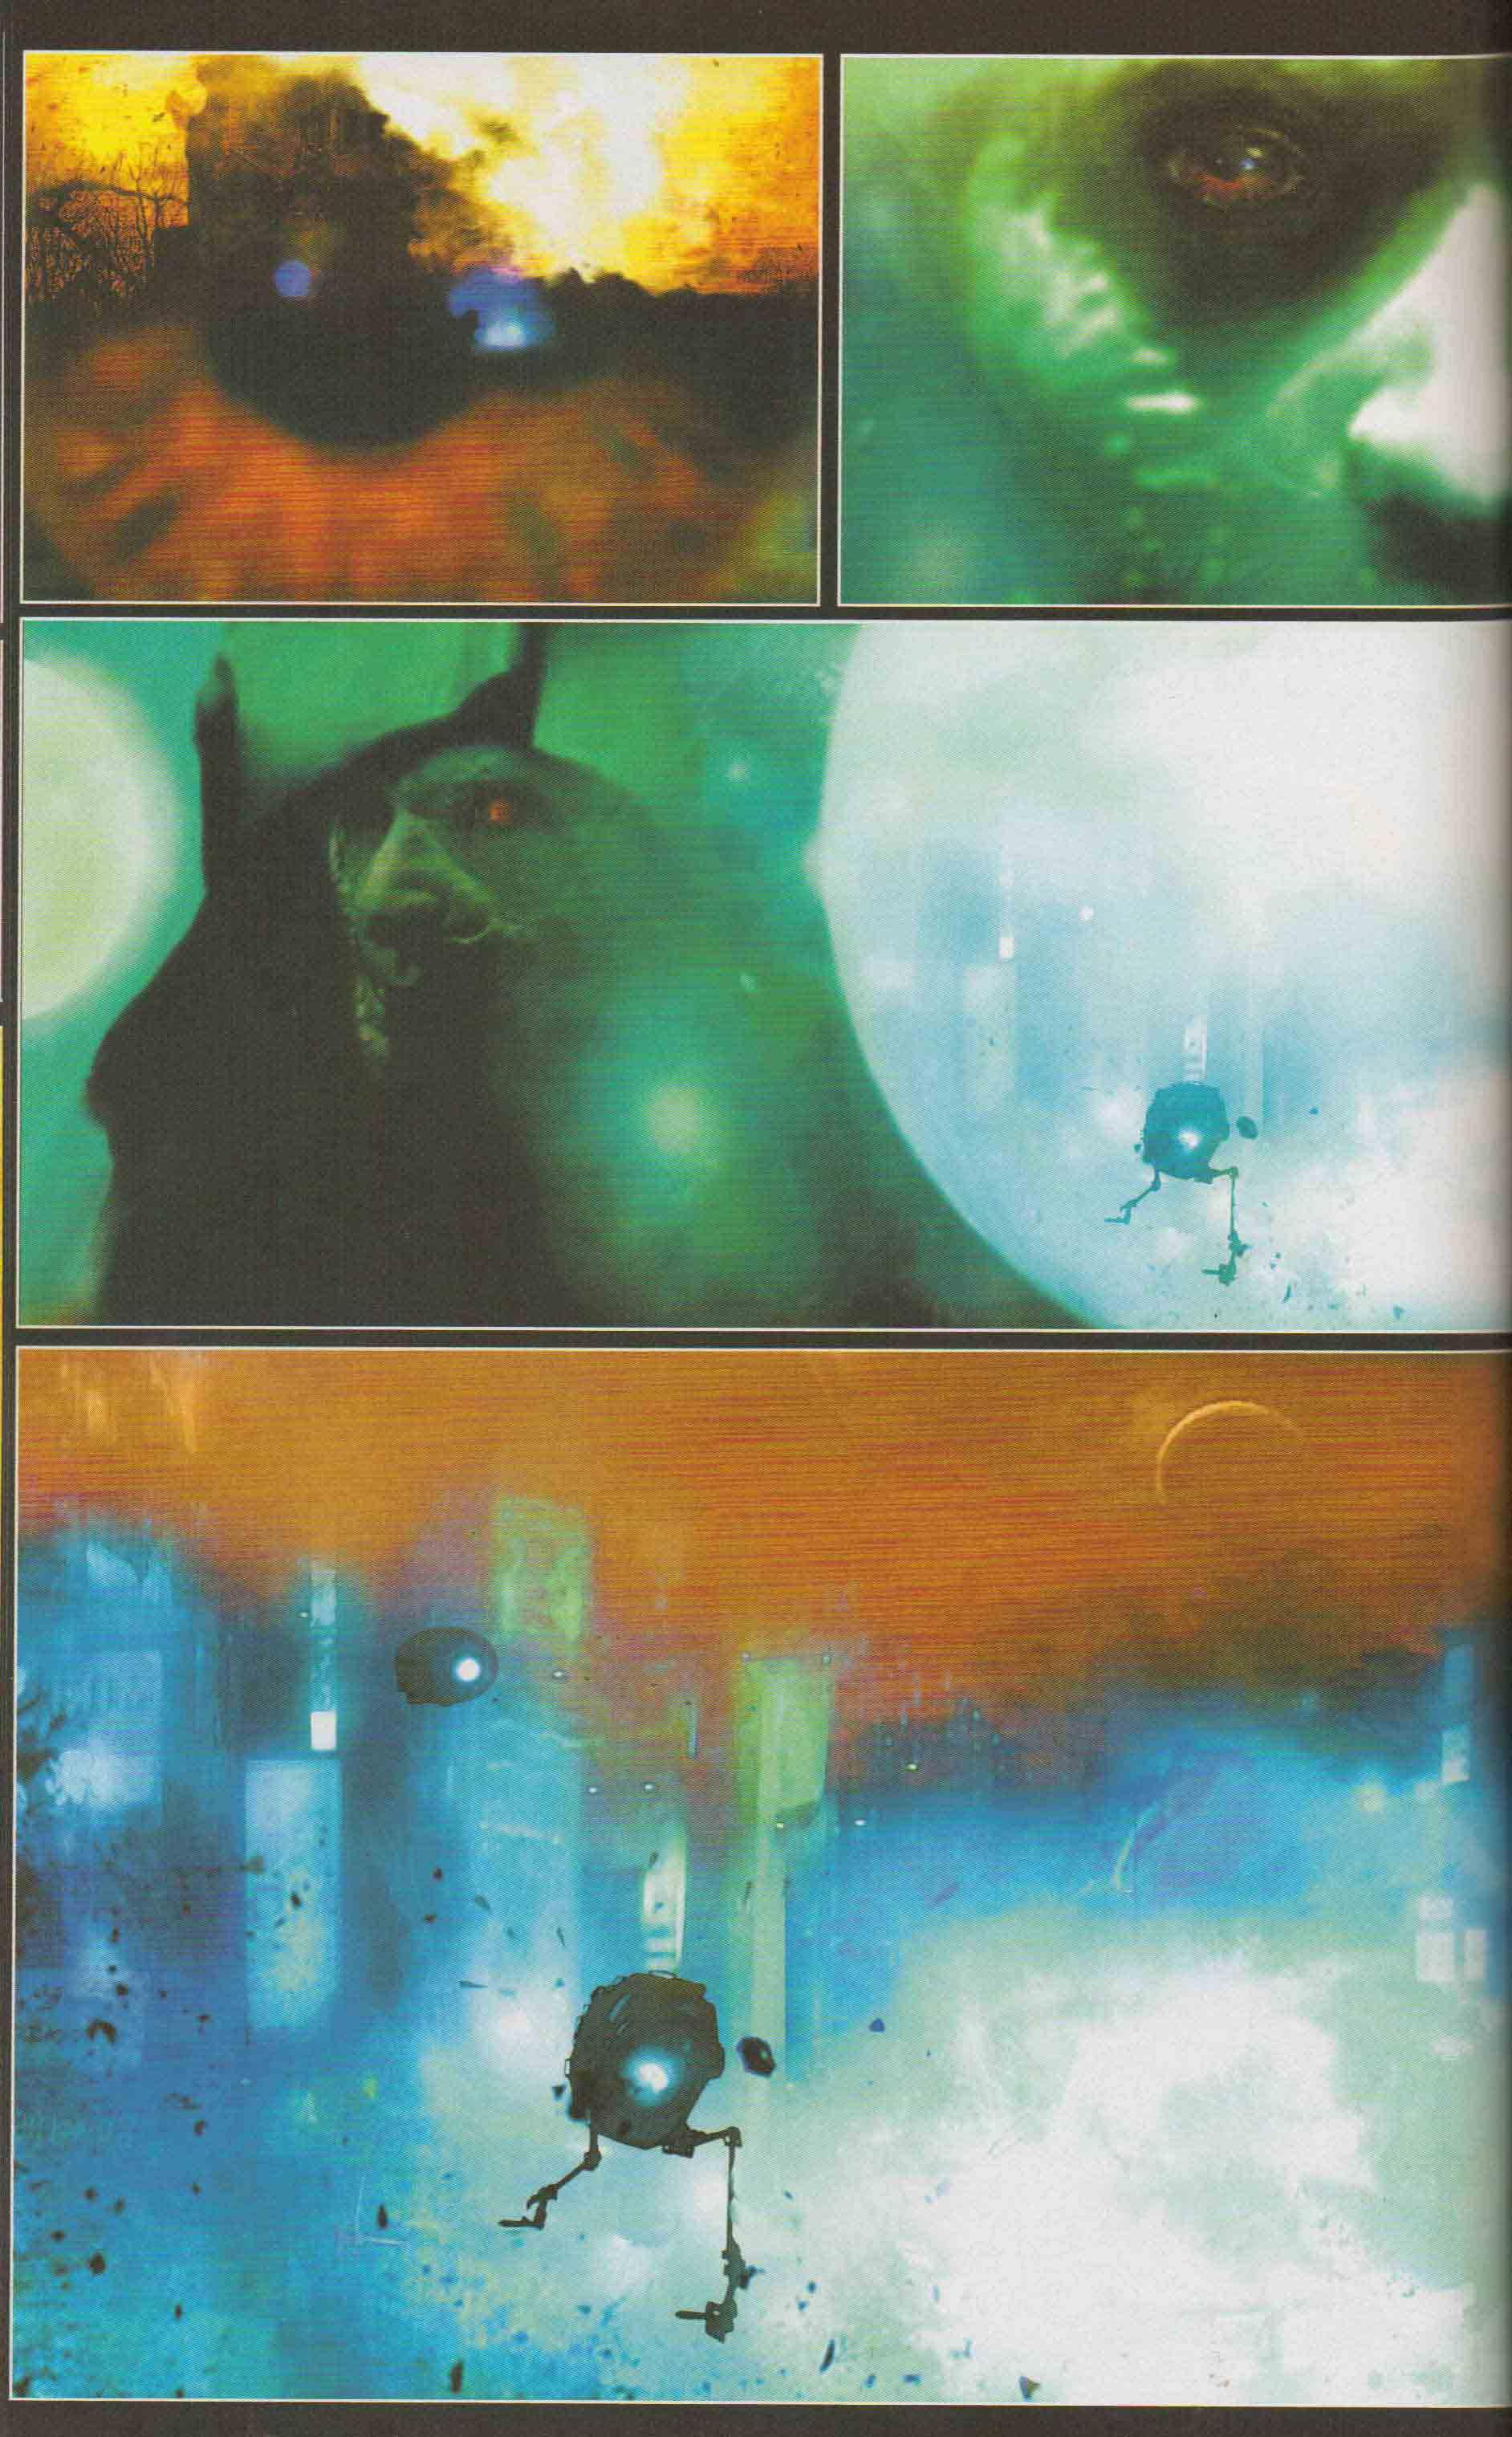 This is one of the cooler pages of this comic's abstract style